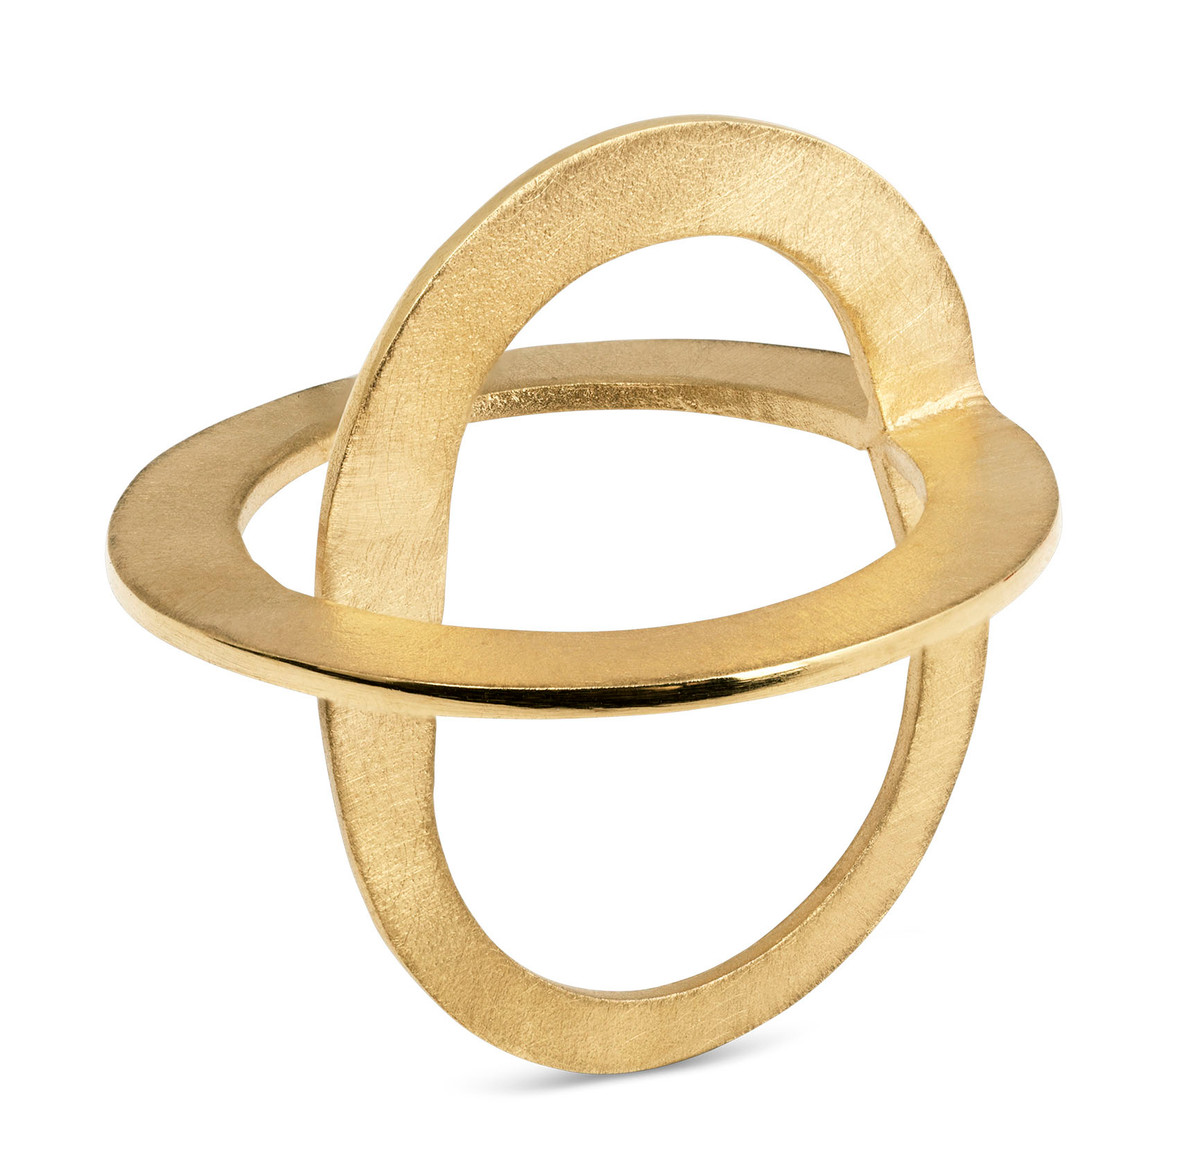 Joidart Cercles Gold Ring Size 7